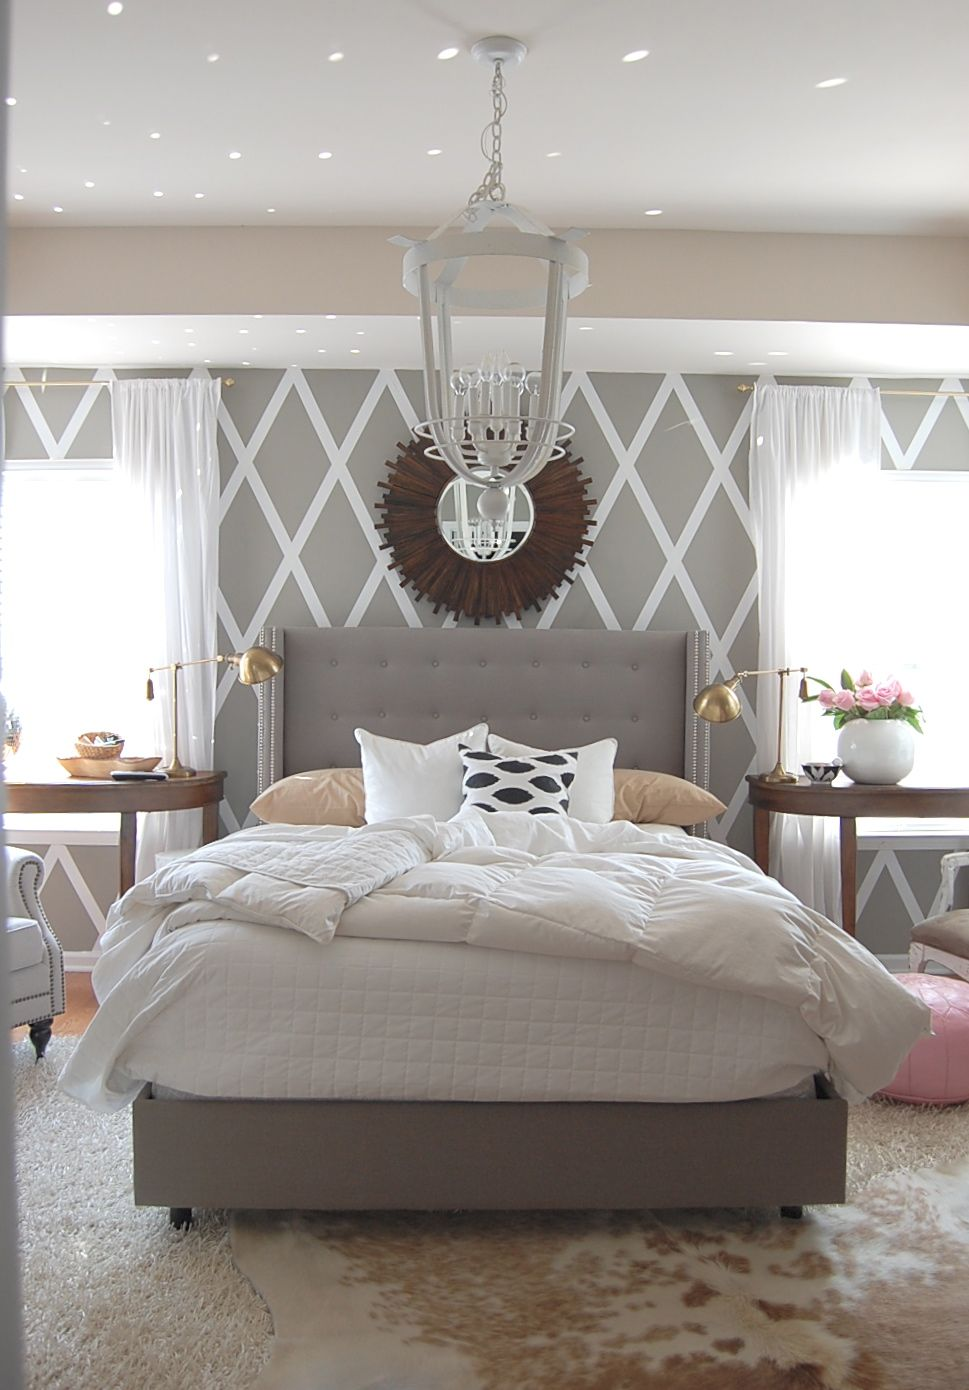 Full Review of the tufted bed, everything you need to know